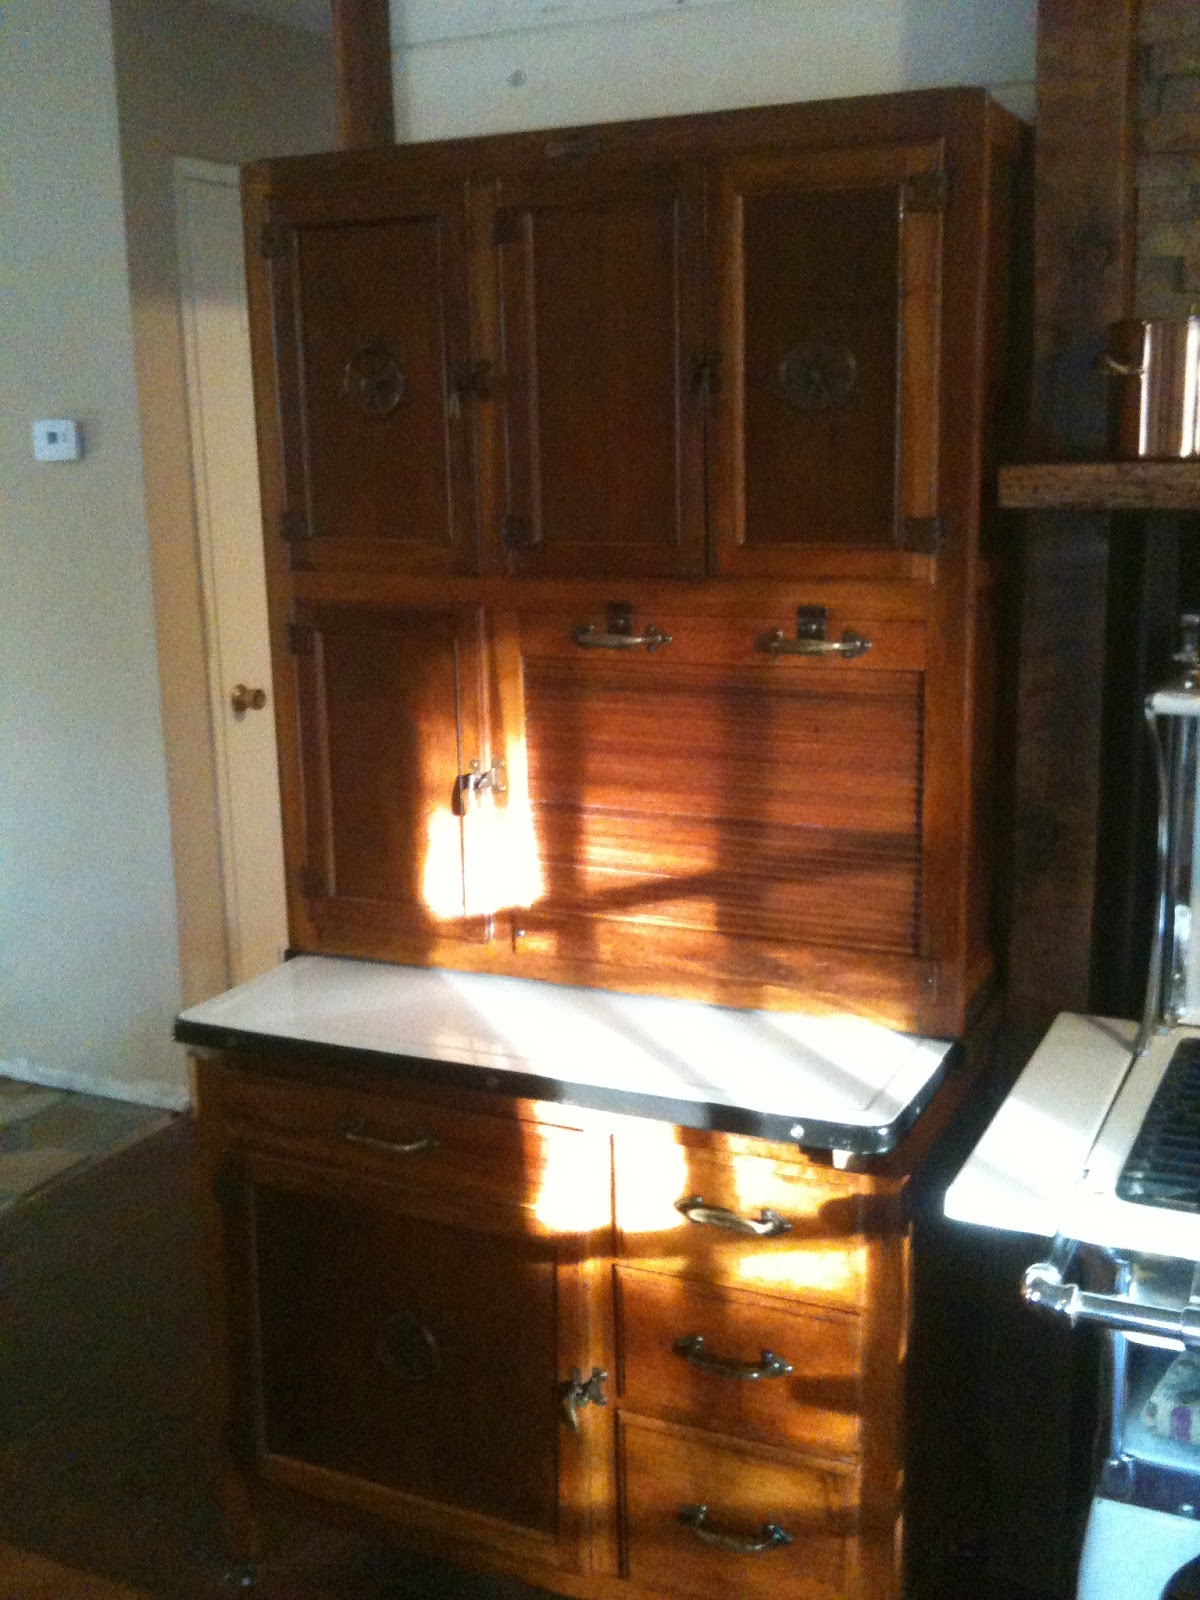 drawers and a large cabinet, and the slideout enamel counter surface